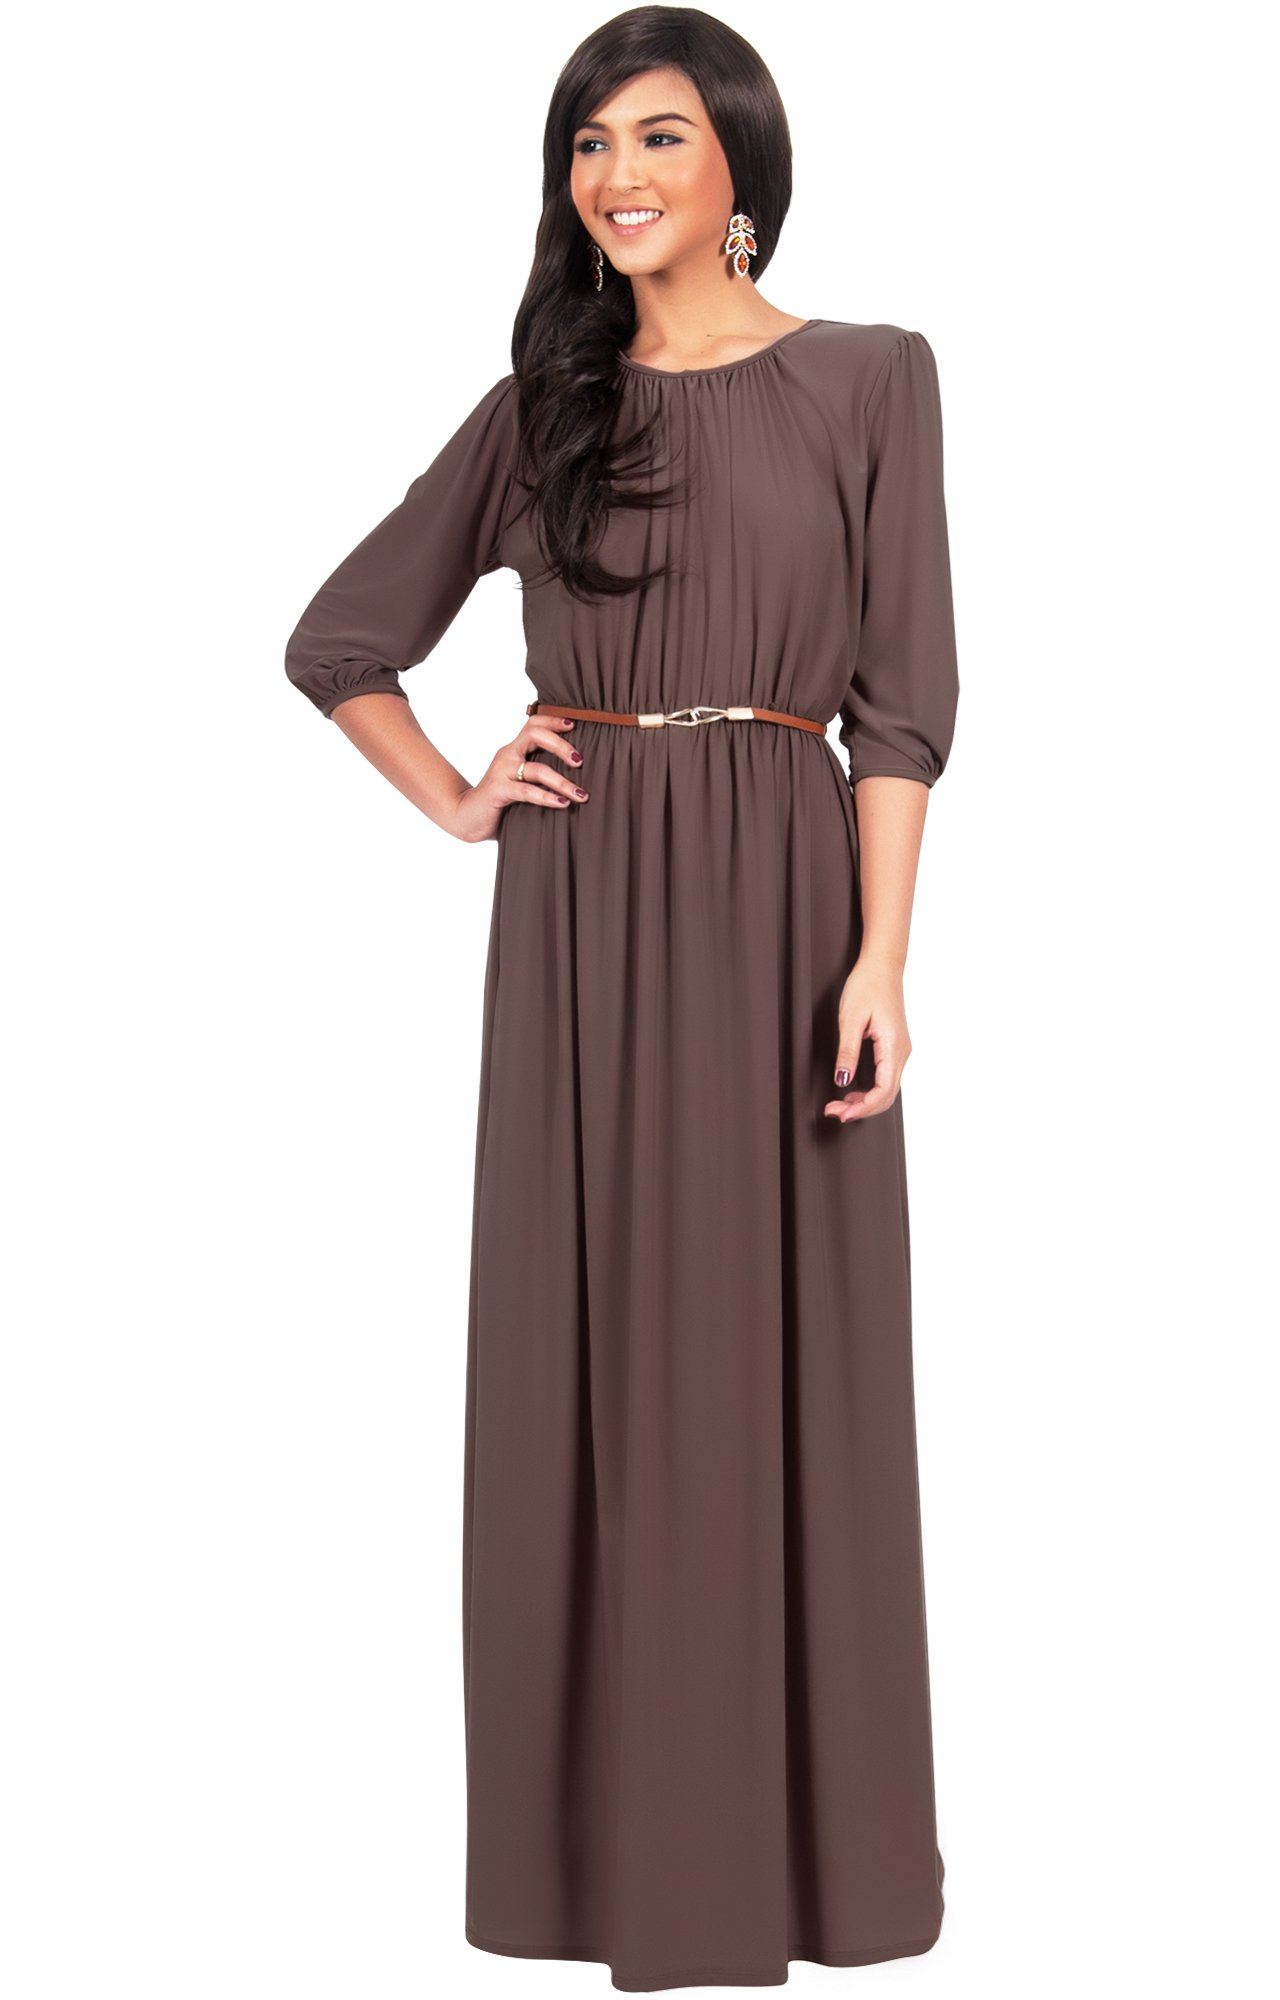 KOH KOH Plus Size Women Long 3/4 Sleeve Sleeves Vintage Autumn Fall Winter Flowy Formal Evening Work Office Modest Peasant Cute Abaya Gown Gowns Maxi Dress Dresses, Dark Brown XL 14-16 (3)